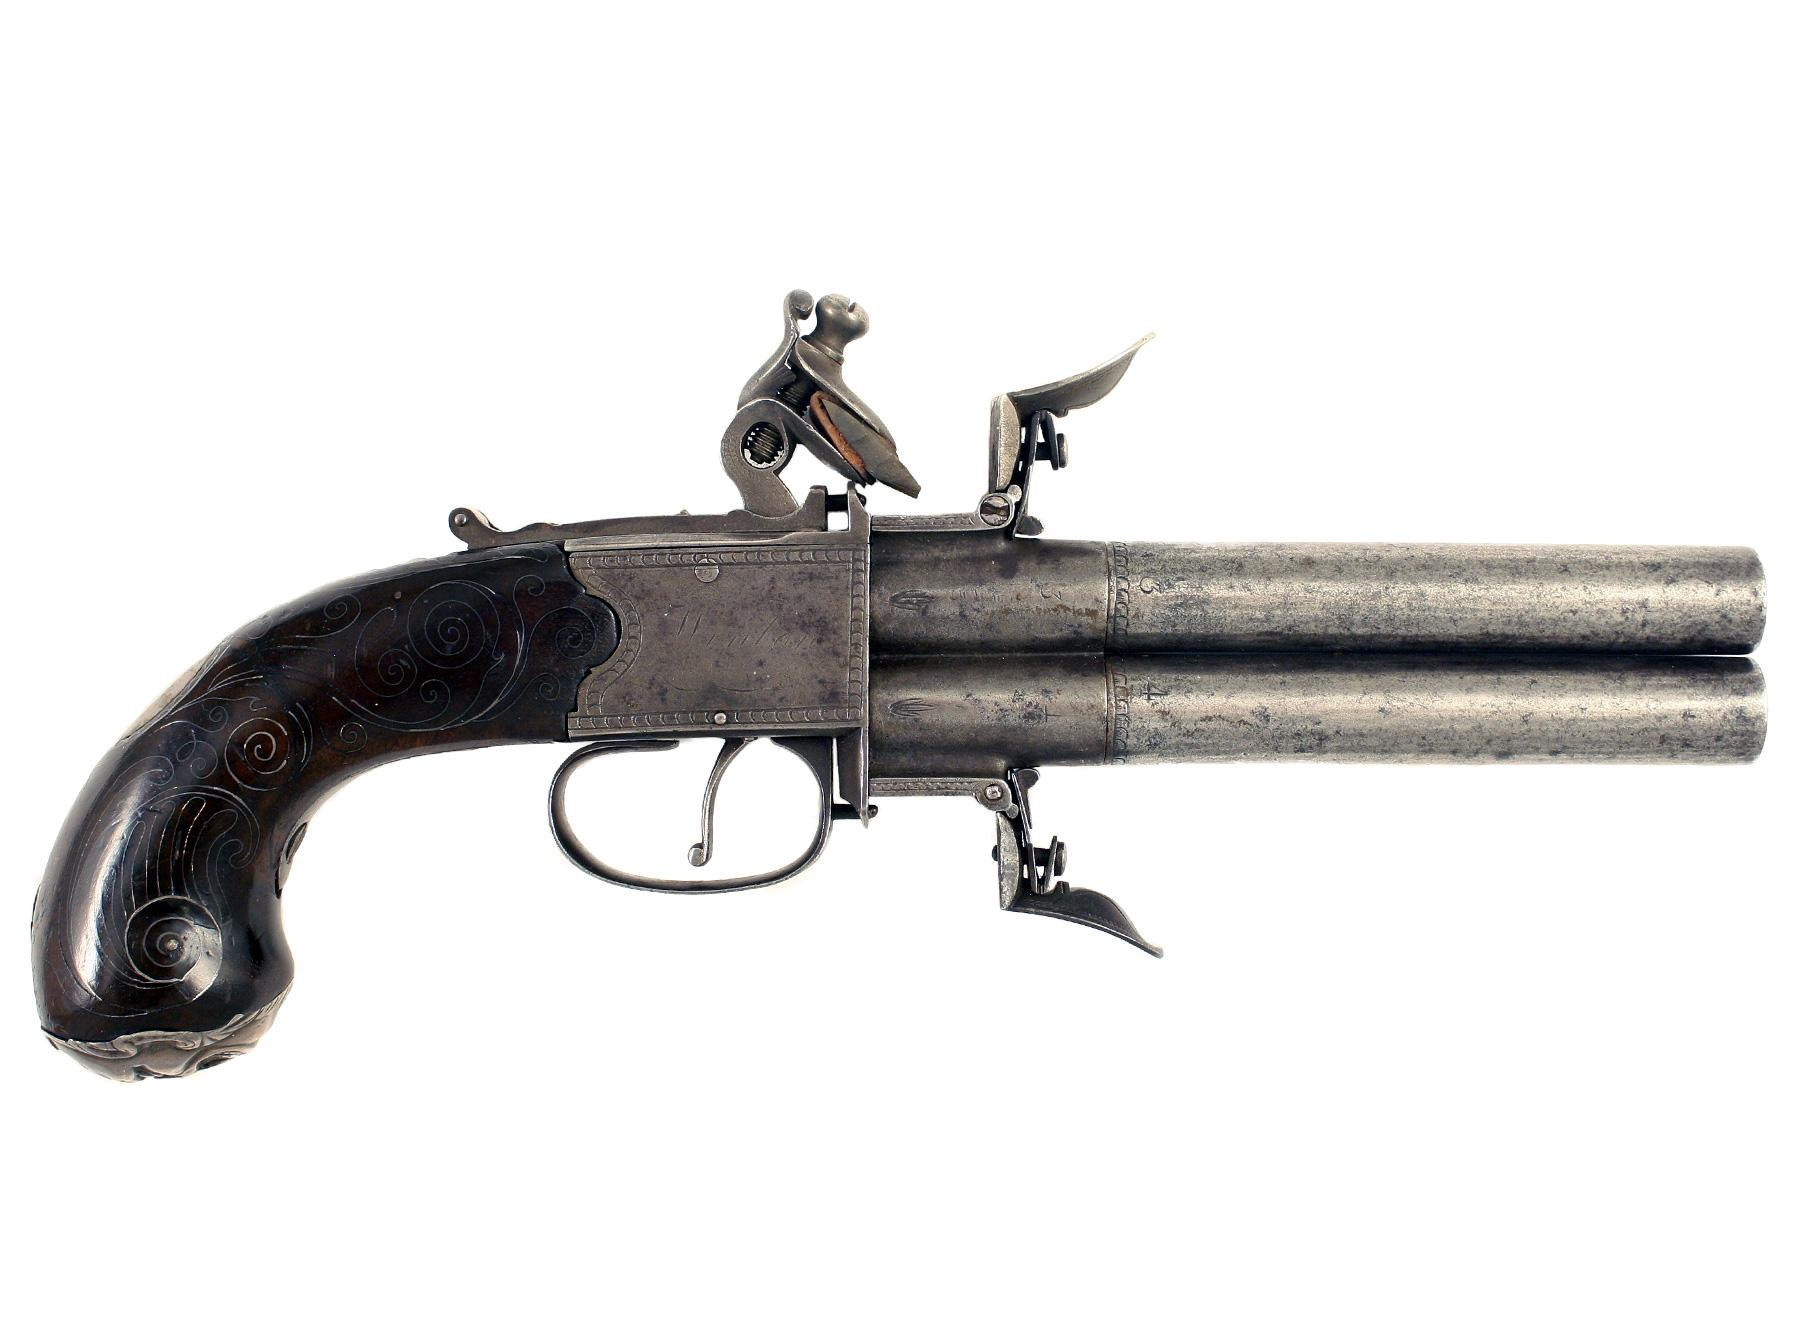 A Scarce Turn-Over Flintlock Pistol